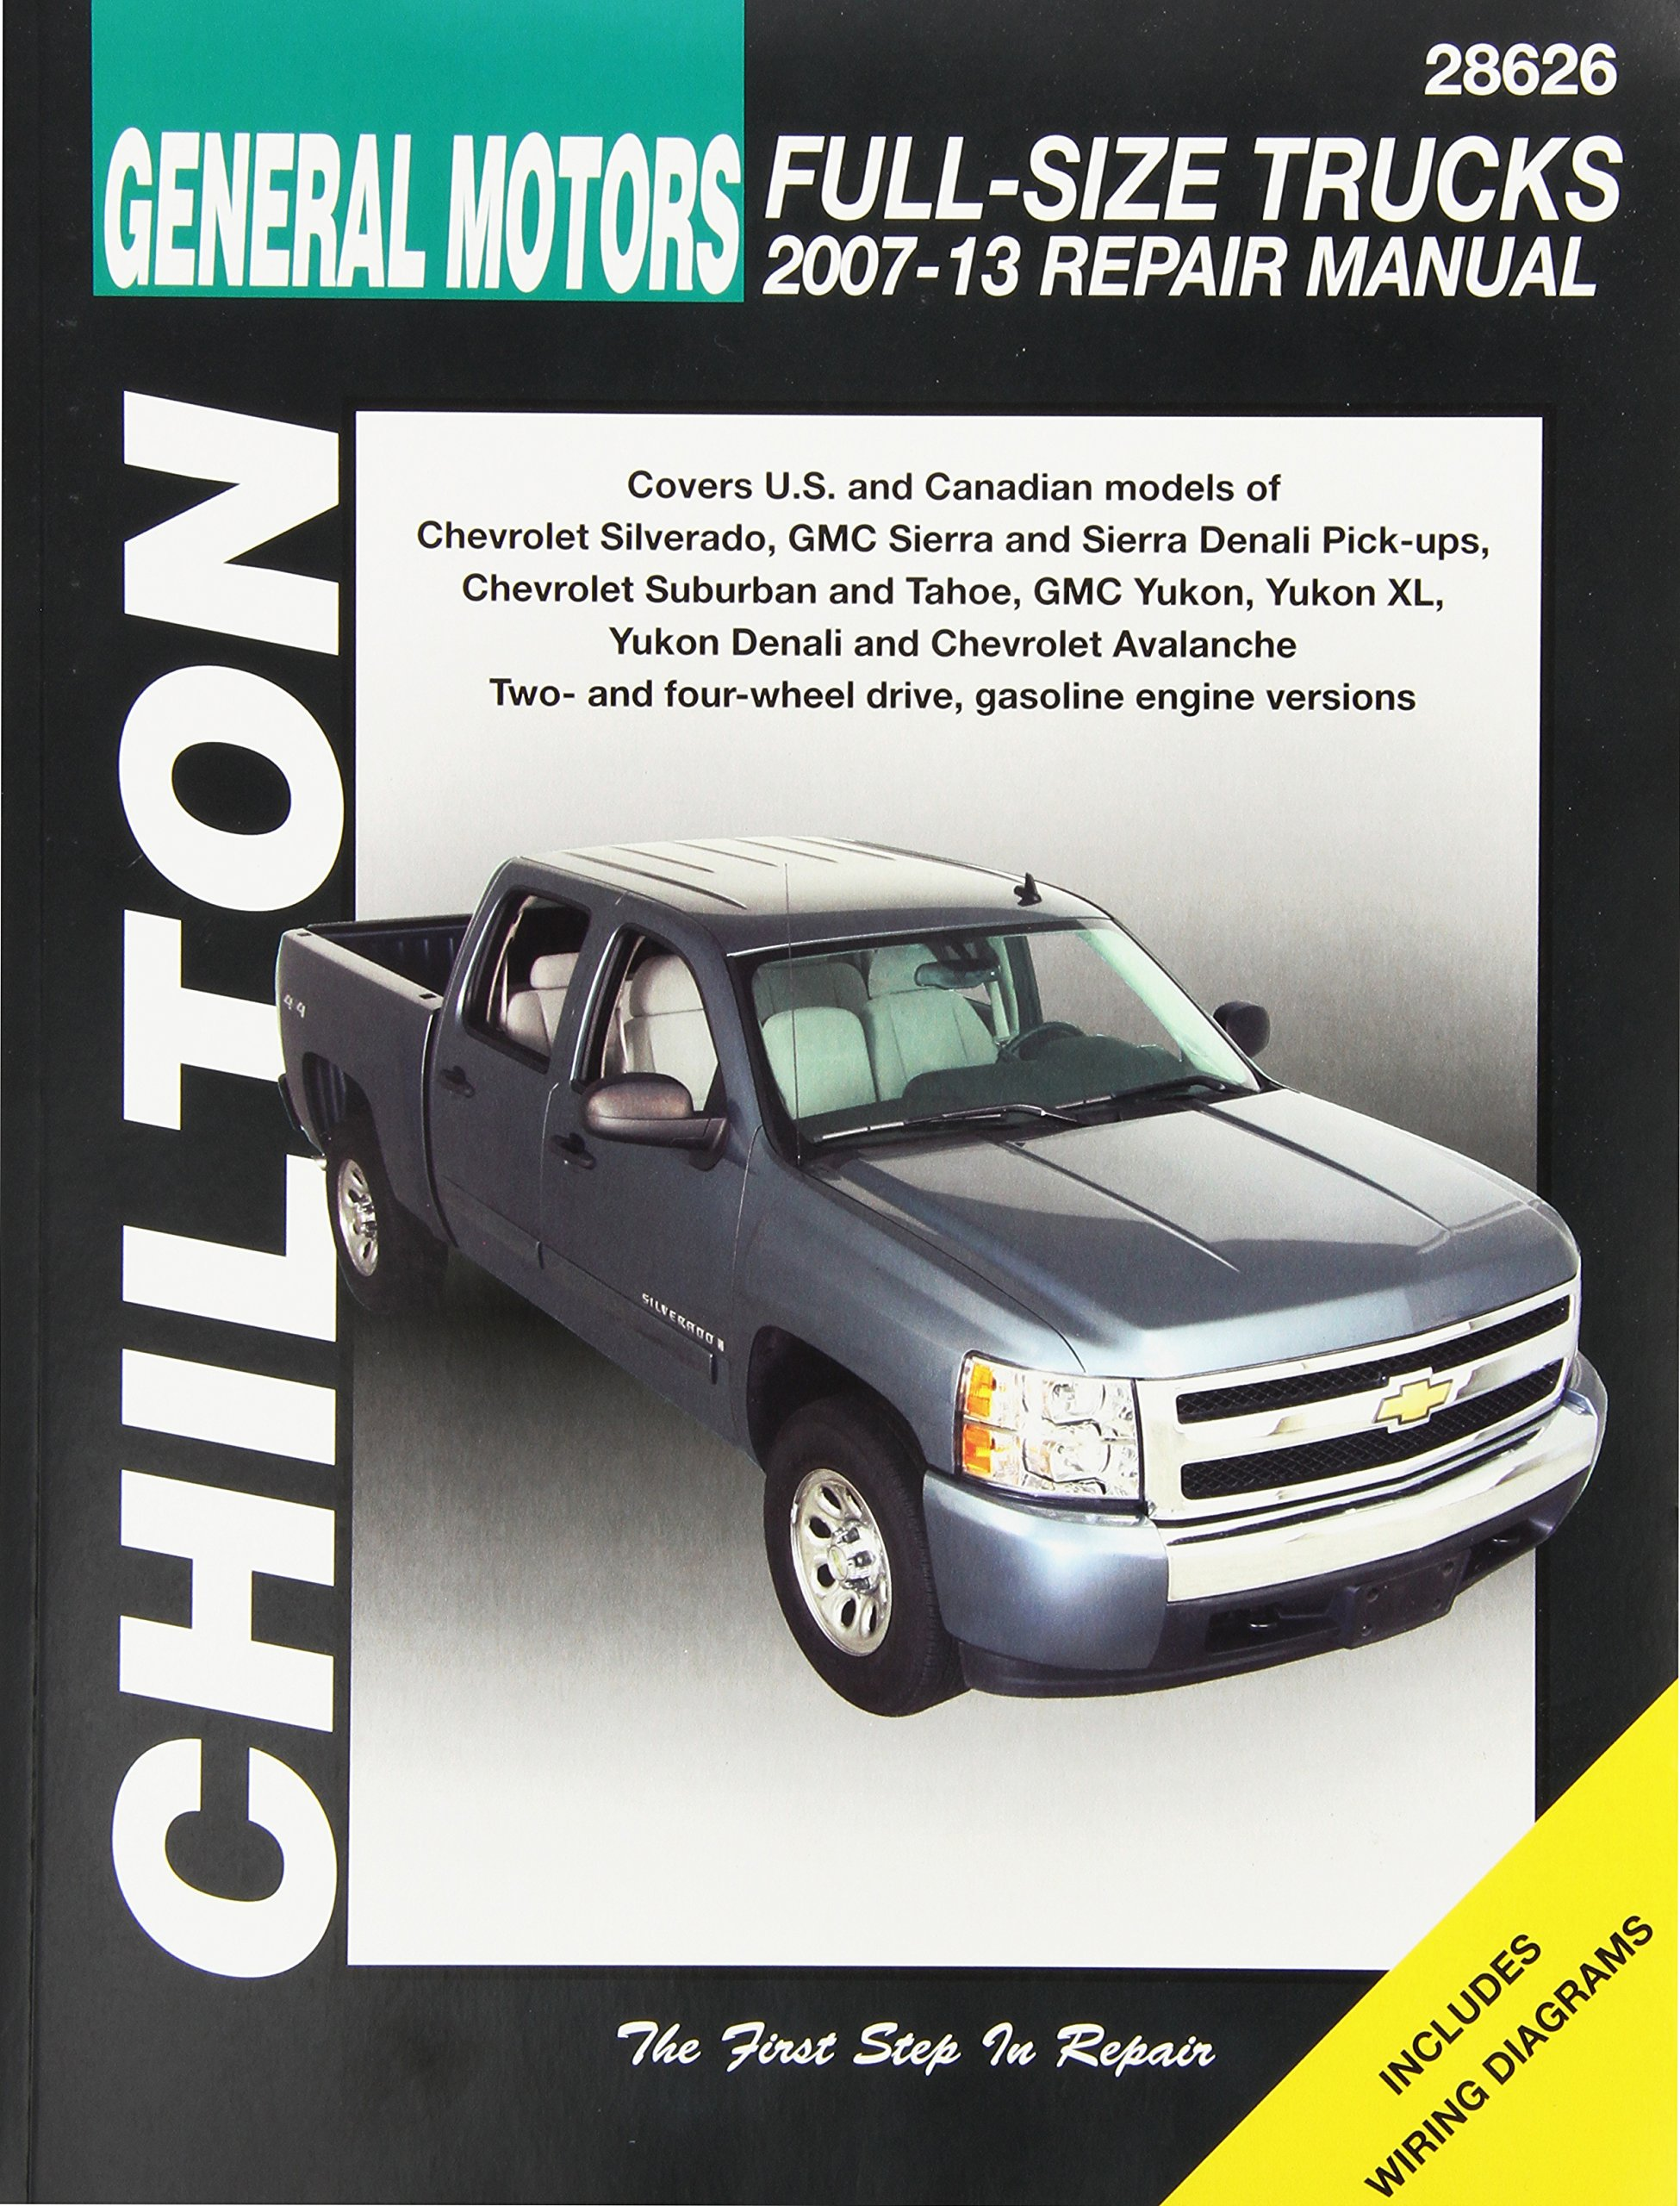 Amazon.com: GM Full-Size Trucks Chilton Repair Manual (2007-2012)  (0035675286268): Books